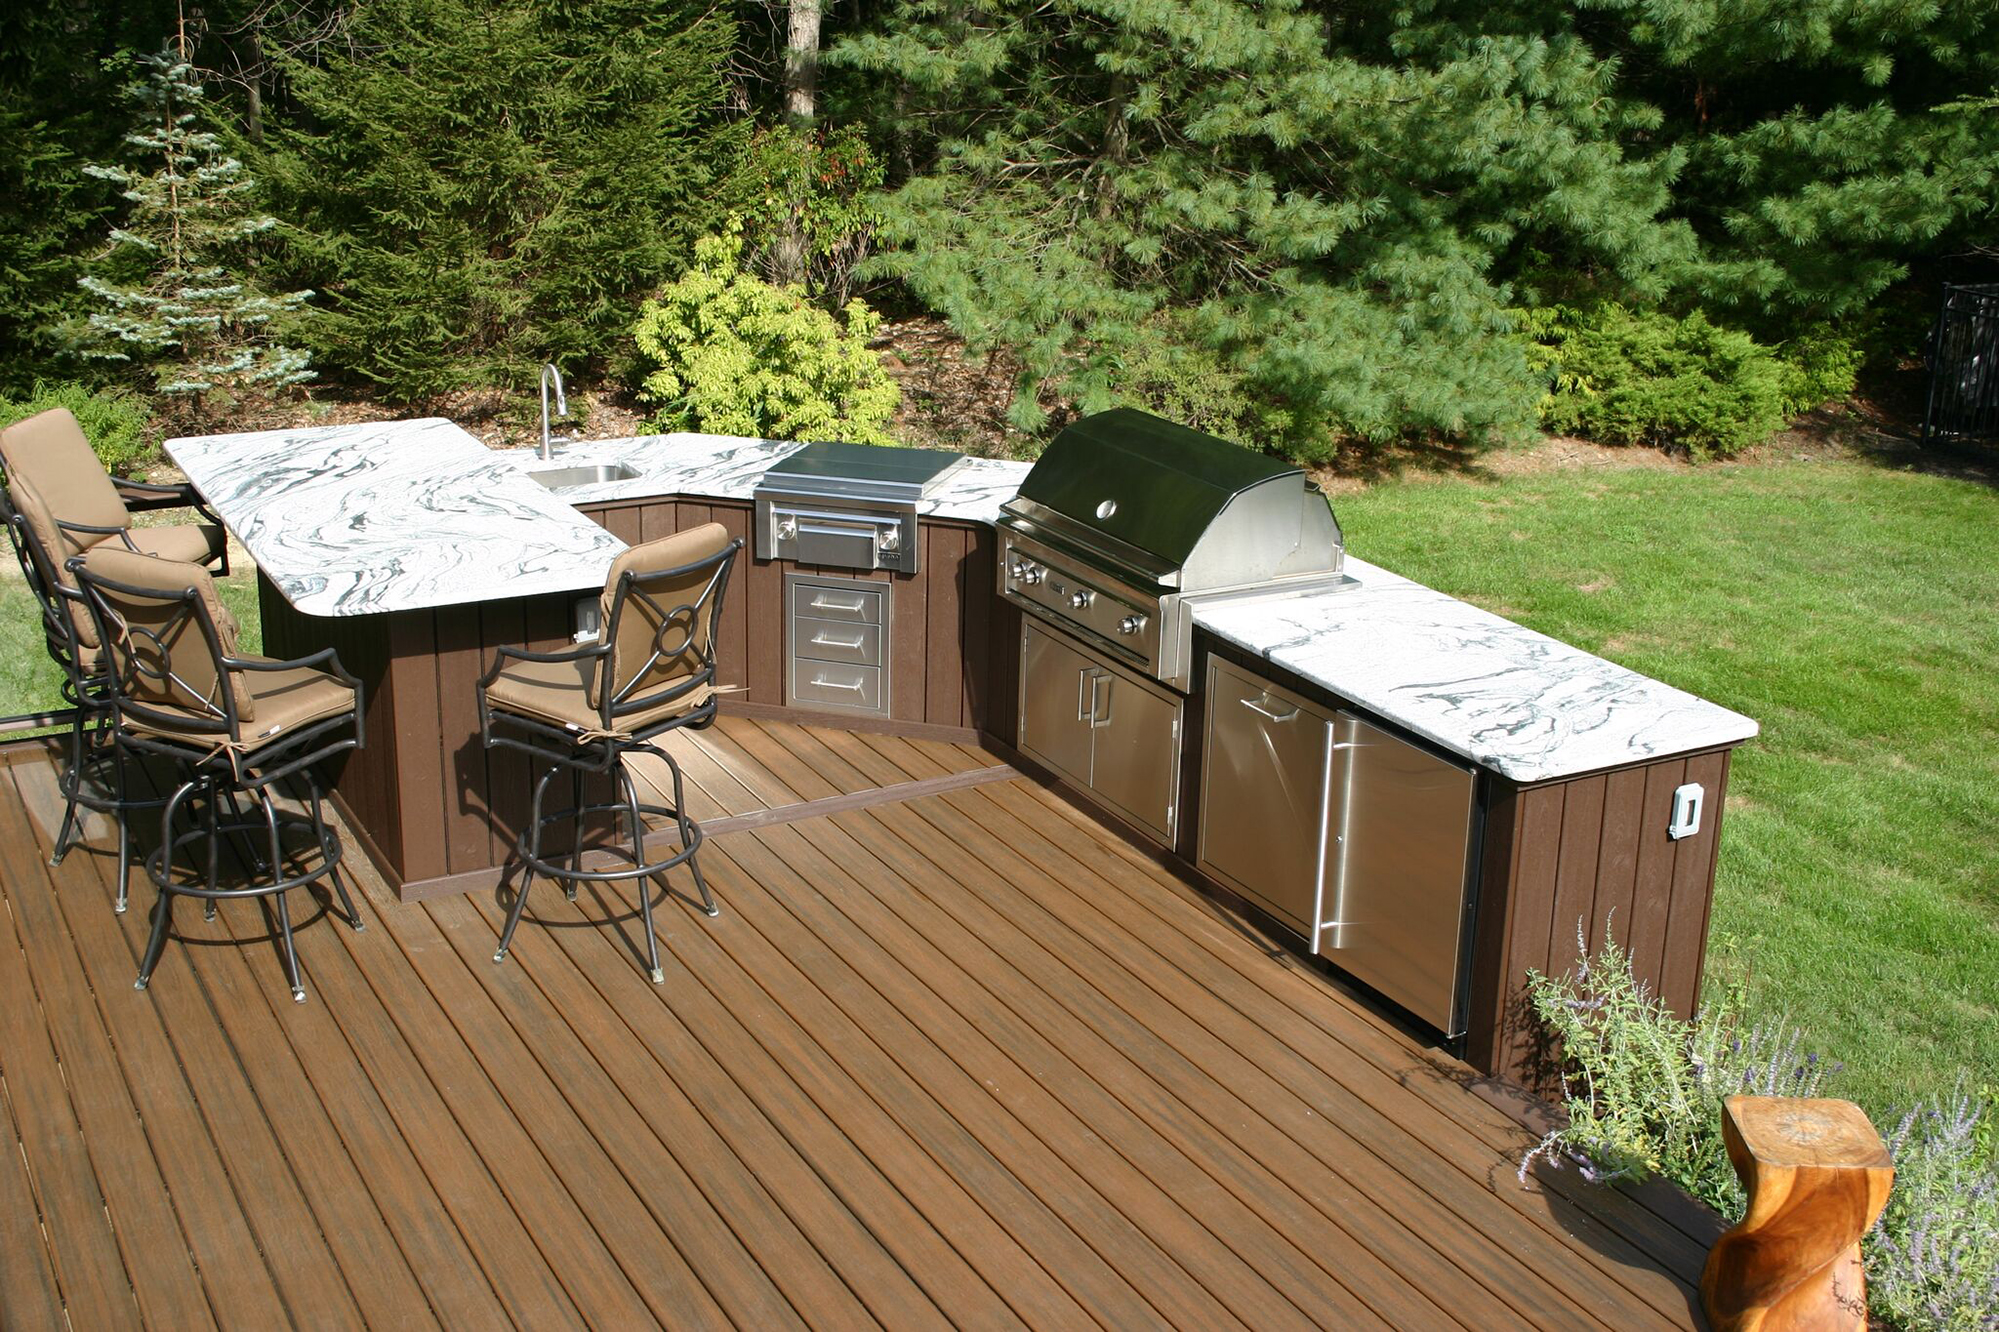 designing outdoor kitchens professional deck builder outdoordesigning outdoor kitchens